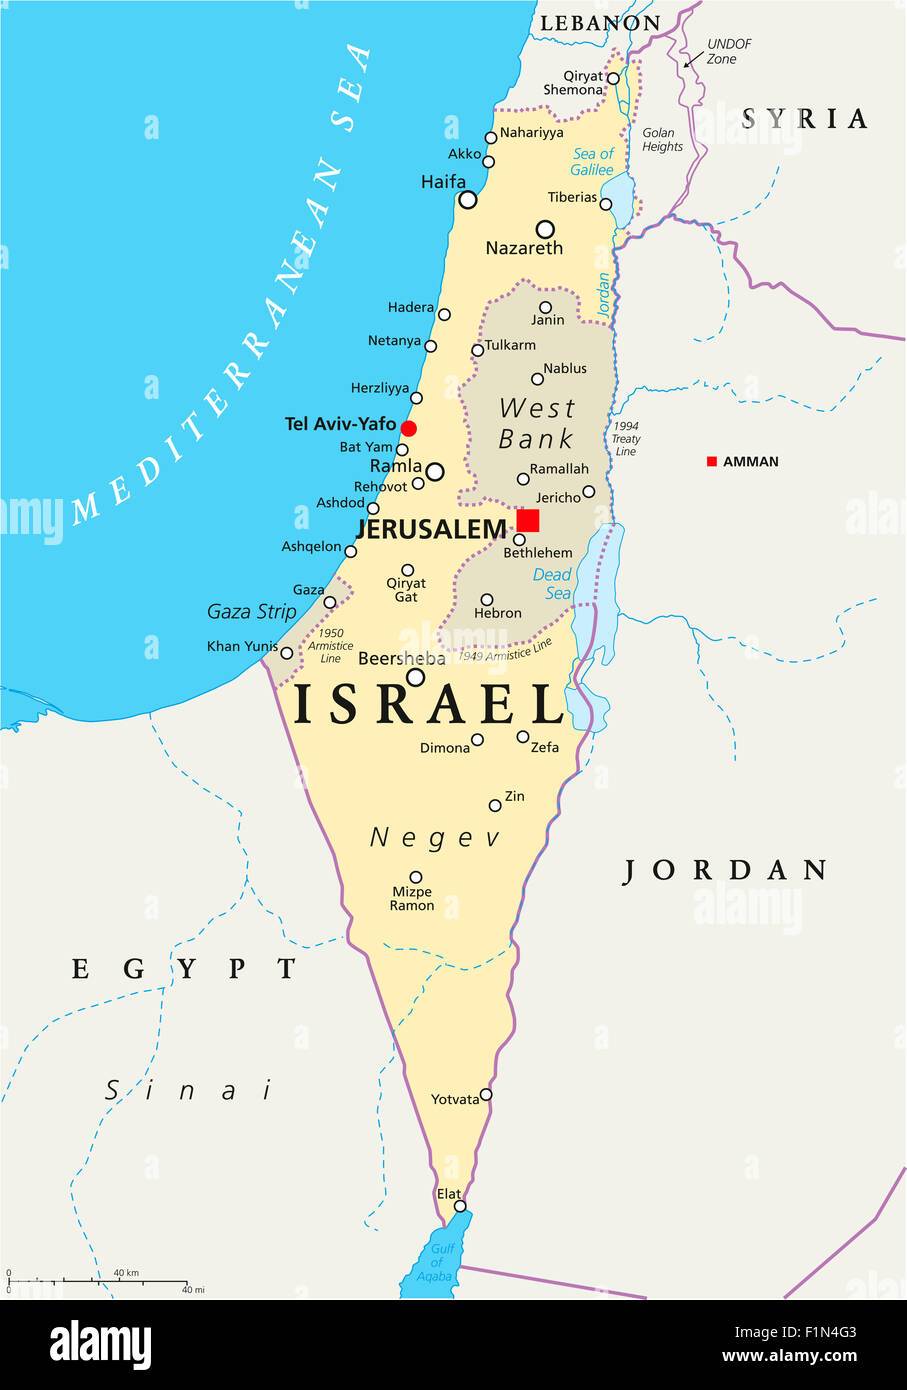 Israel political map with capital Jerusalem national borders Stock